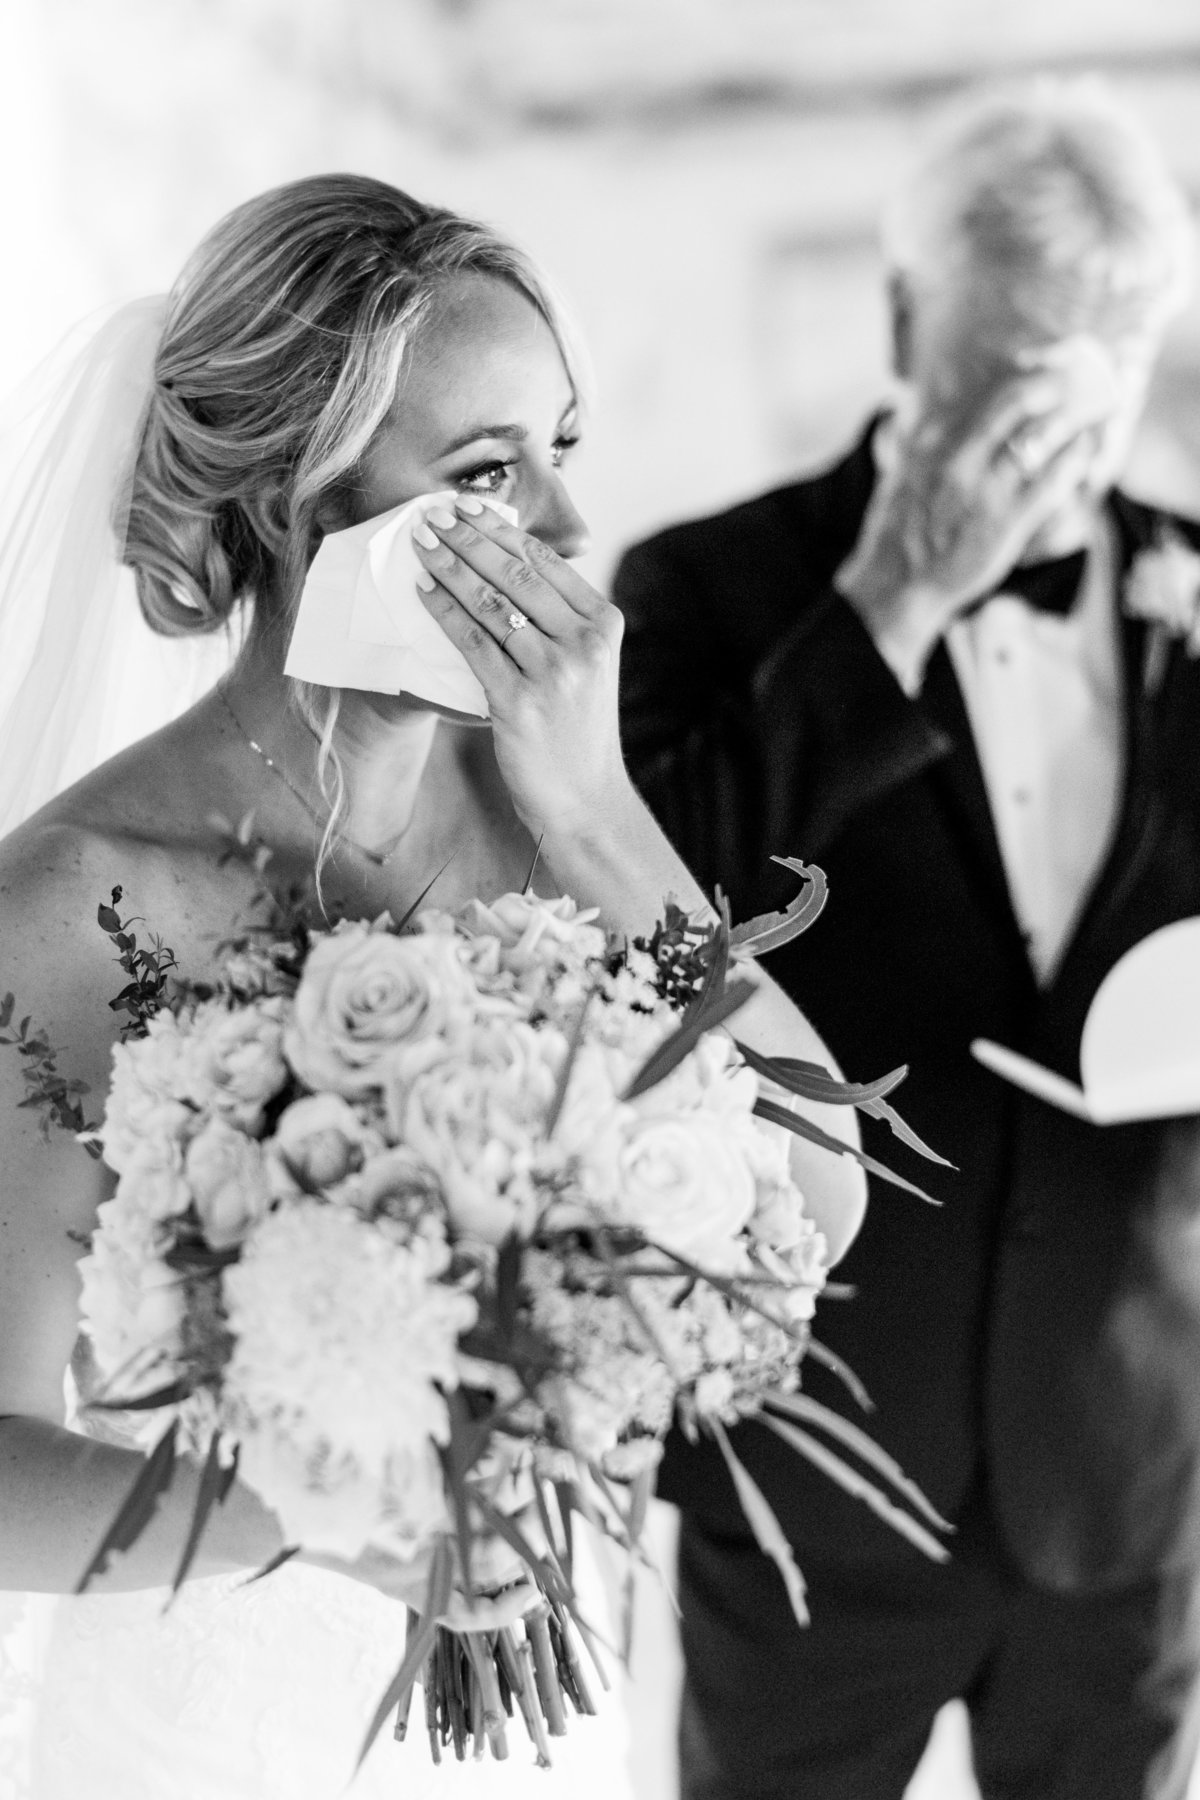 Bride wiping off tears after seeing her father on her wedding day